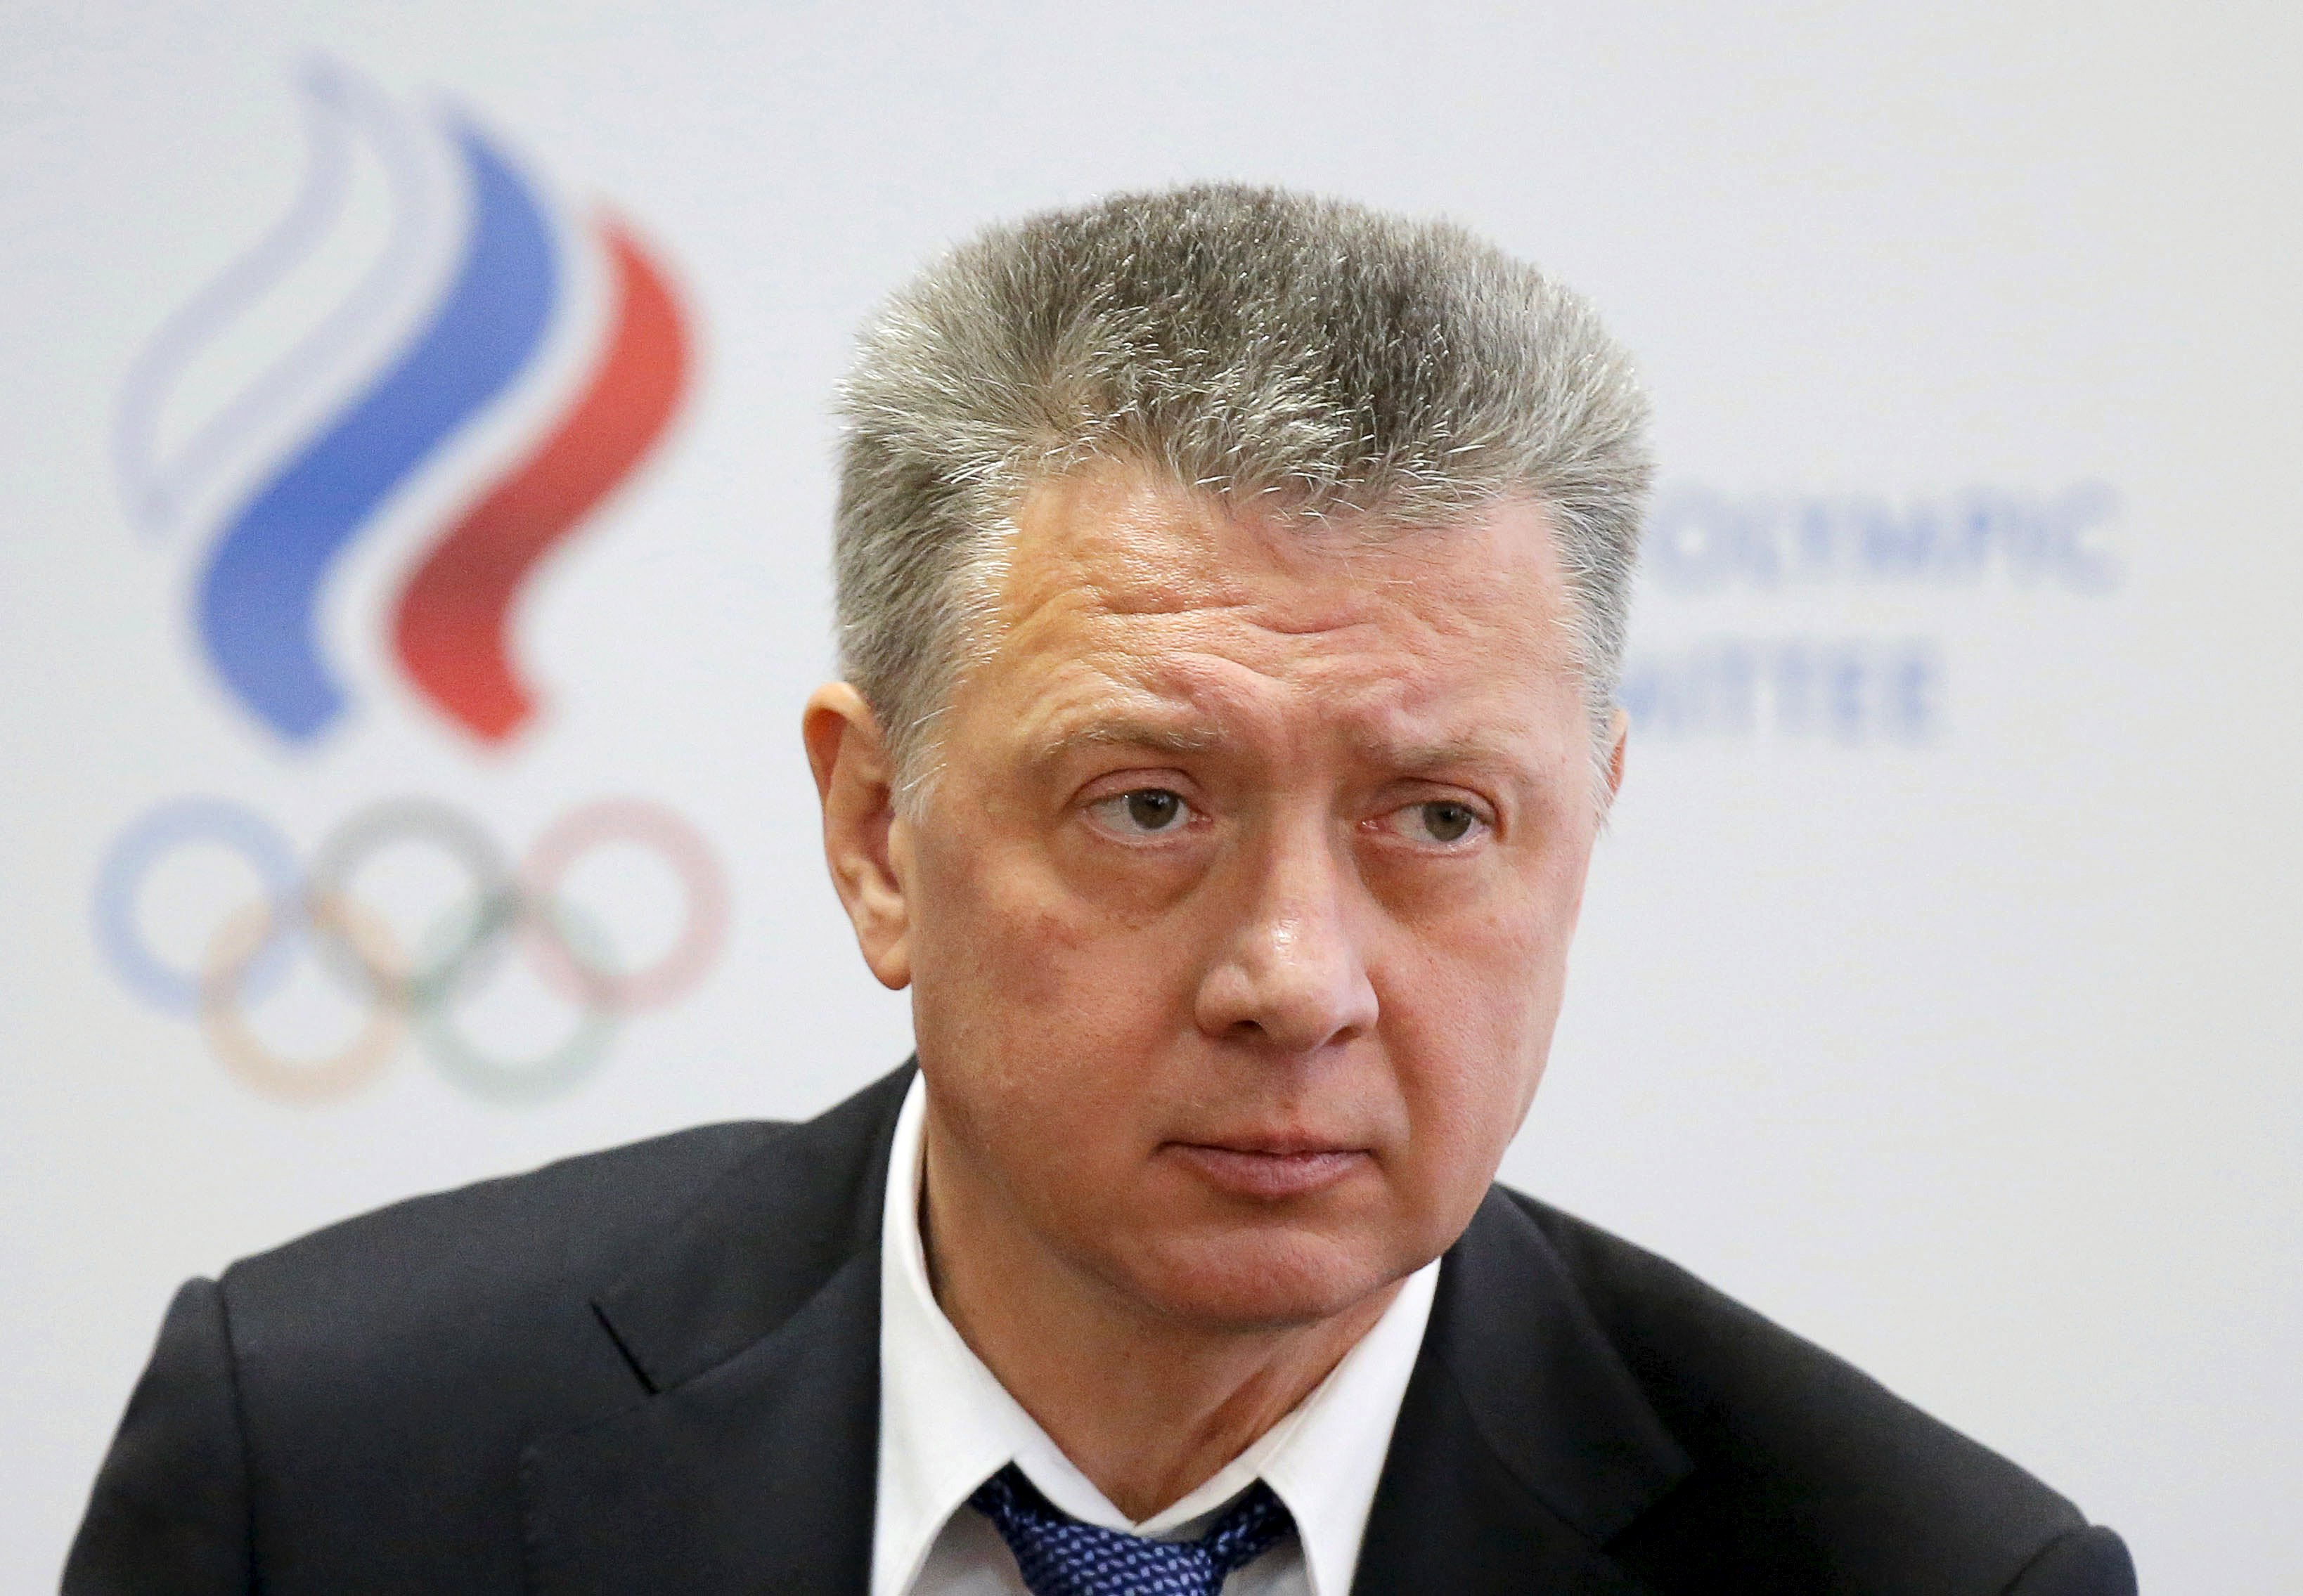 Meldonium tests reignite doping scandal in Russian athletics